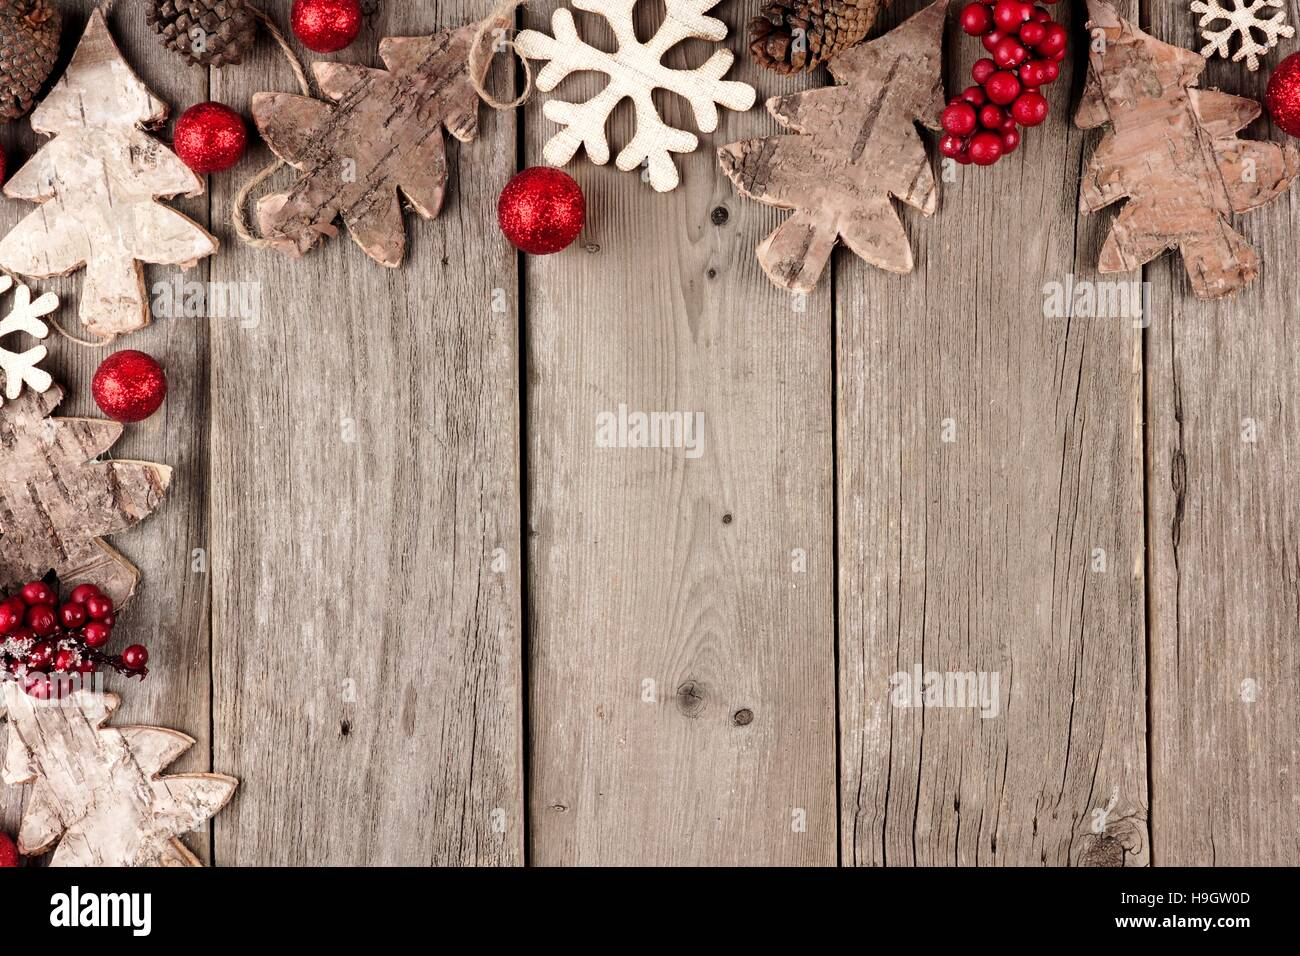 Rustic Christmas Corner Border With Wood Ornaments And Berries On An Aged Background